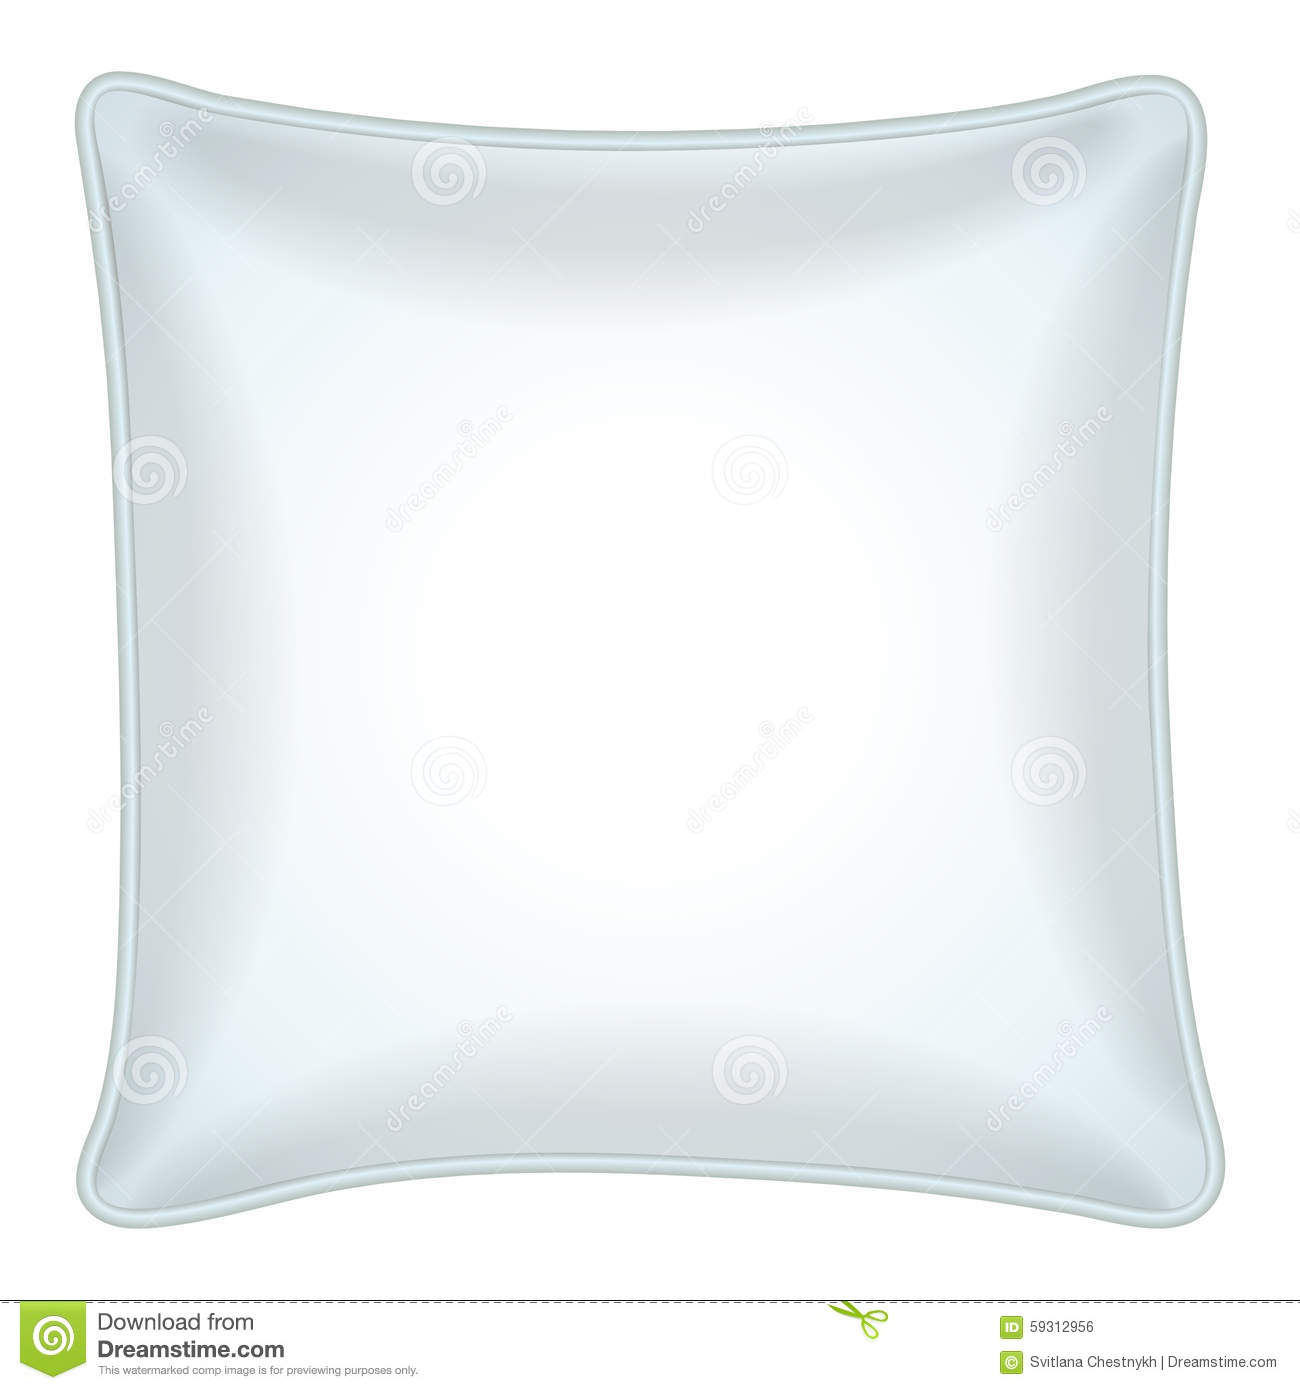 White Pillow, Top View Stock Vector - Image: 59312956